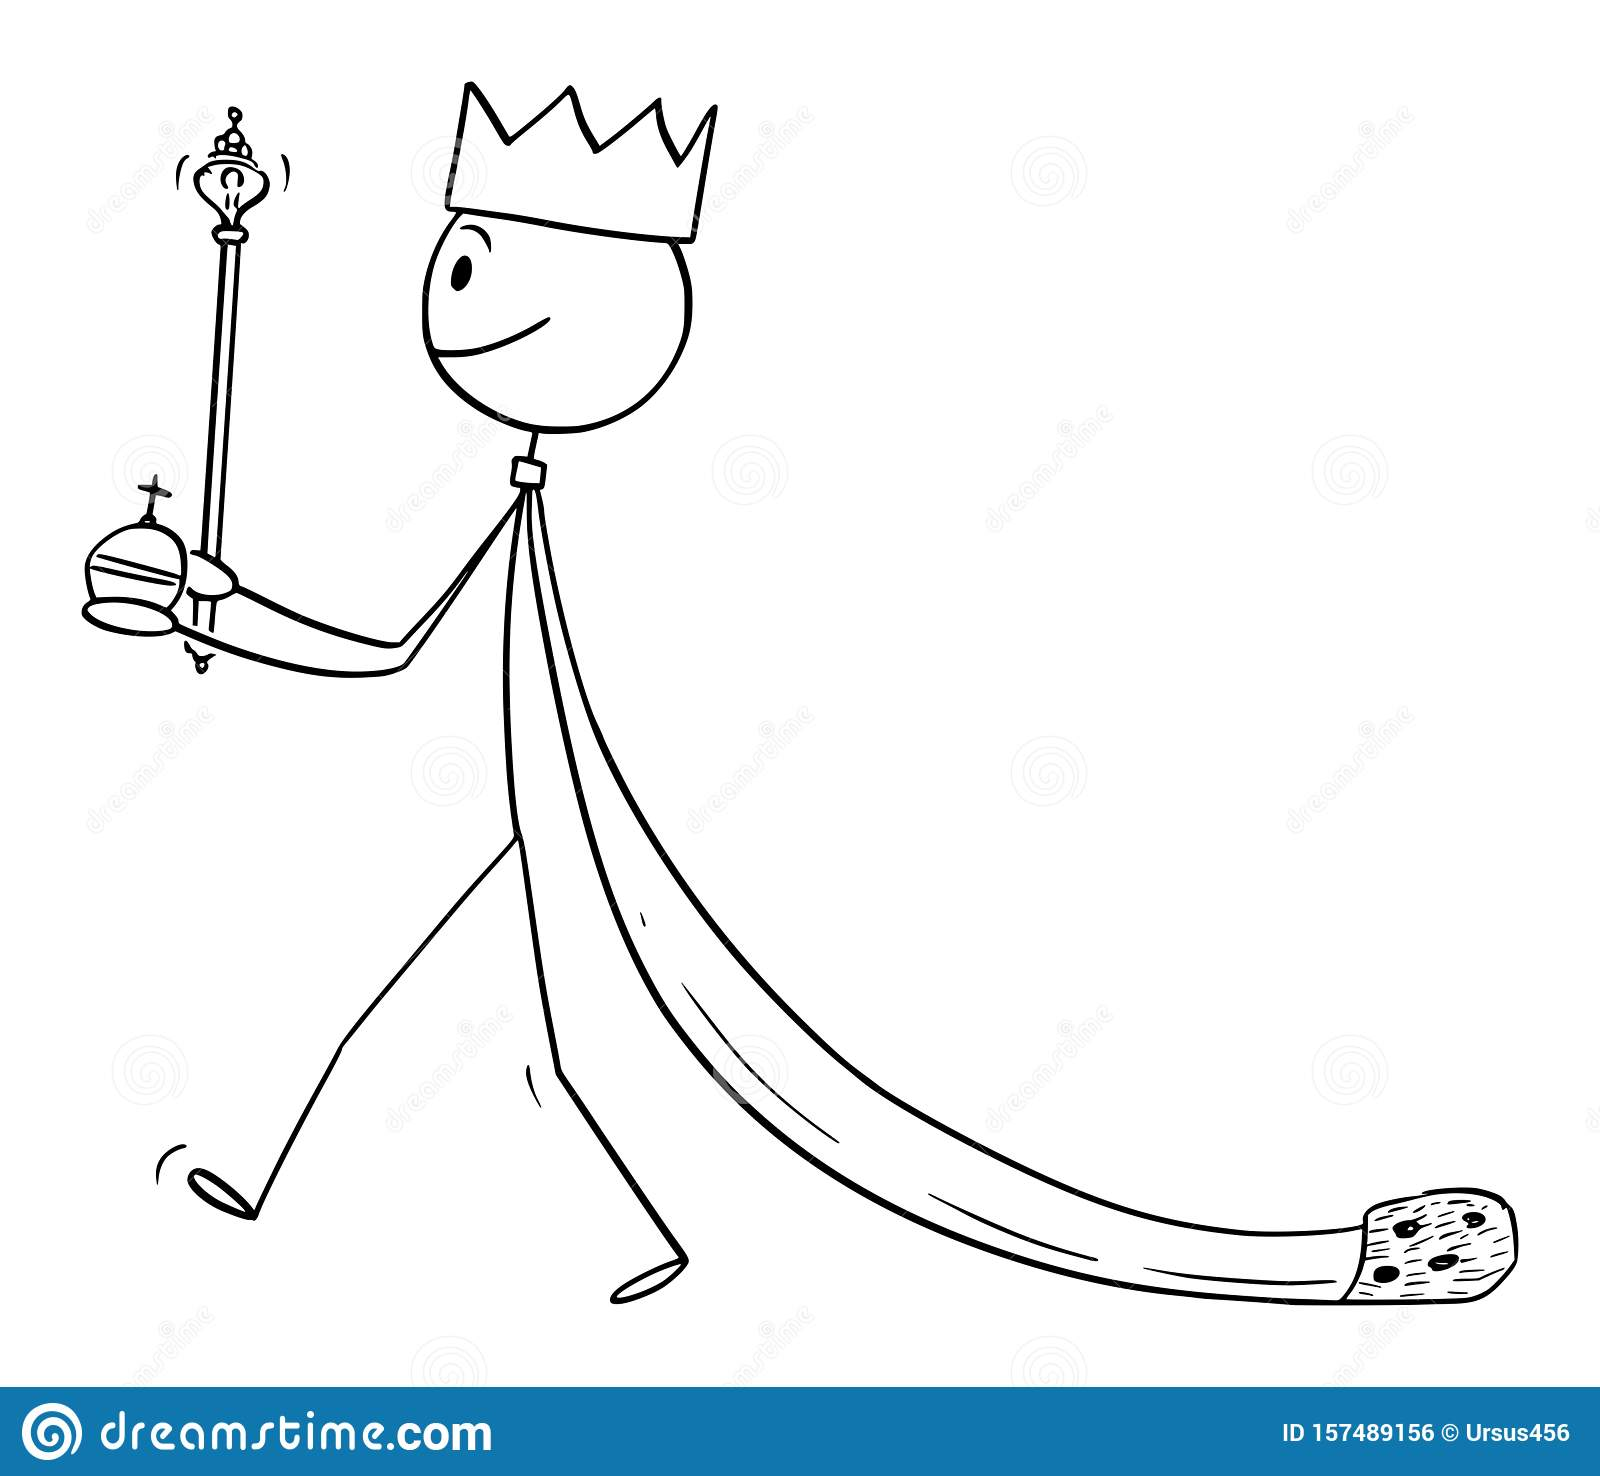 King Robe Stock Illustrations 1 314 King Robe Stock Illustrations Vectors Clipart Dreamstime